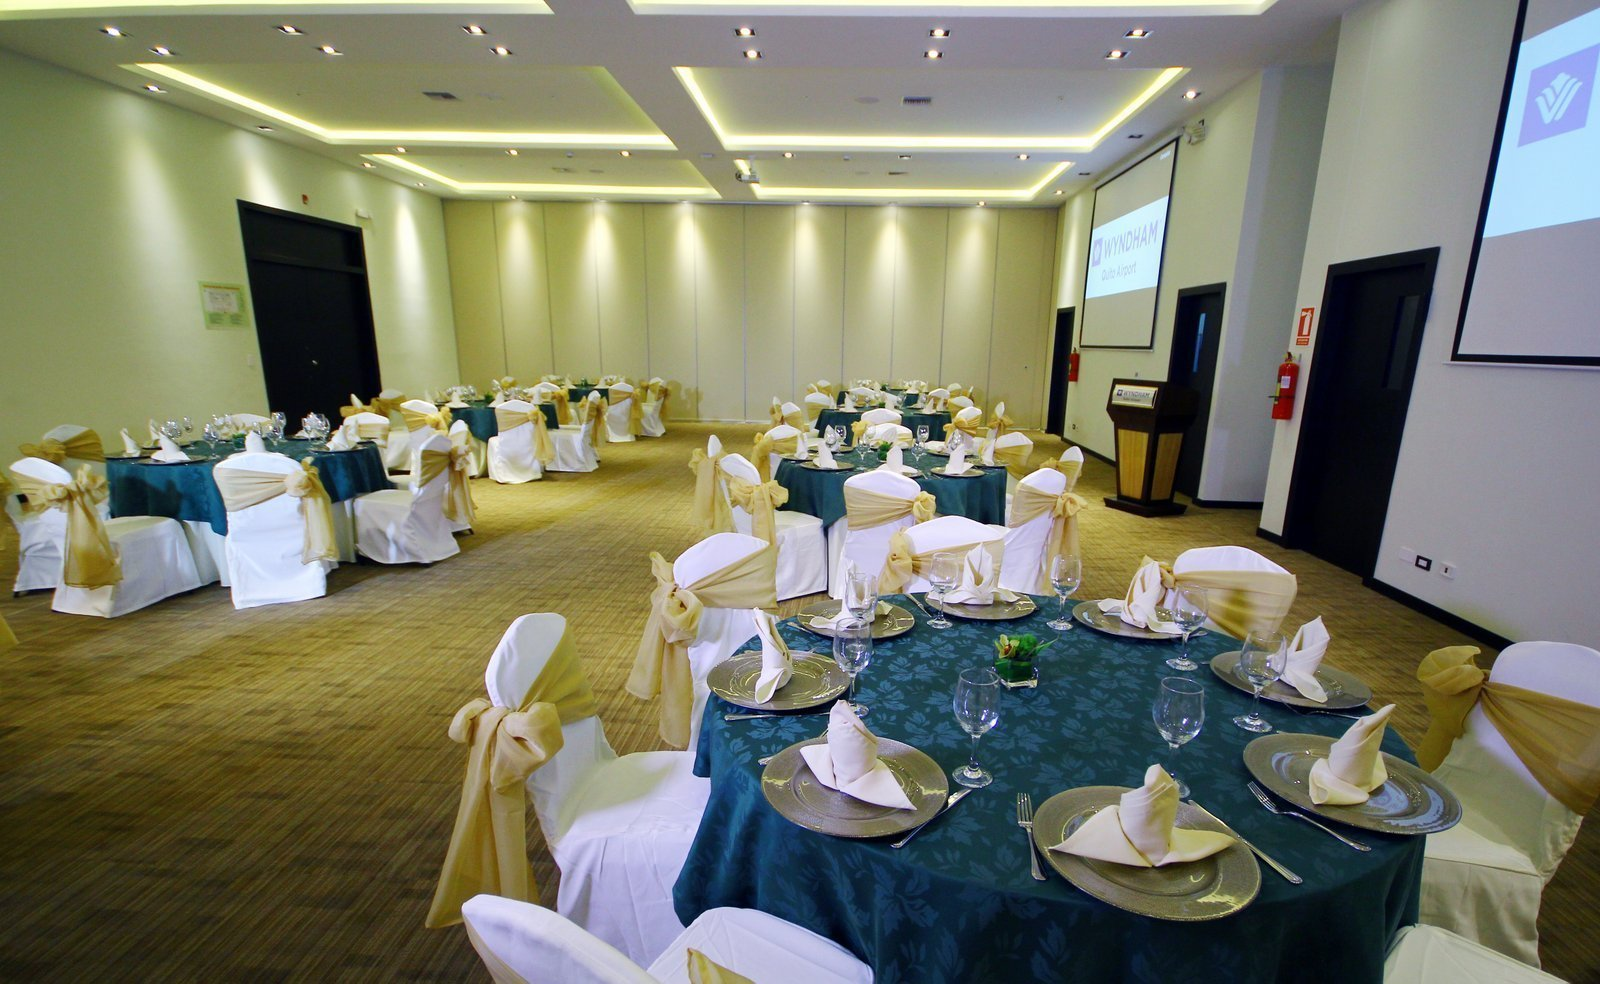 SAN FRANCISCO MEETING ROOM Wyndham Quito Airport Hotel Quito